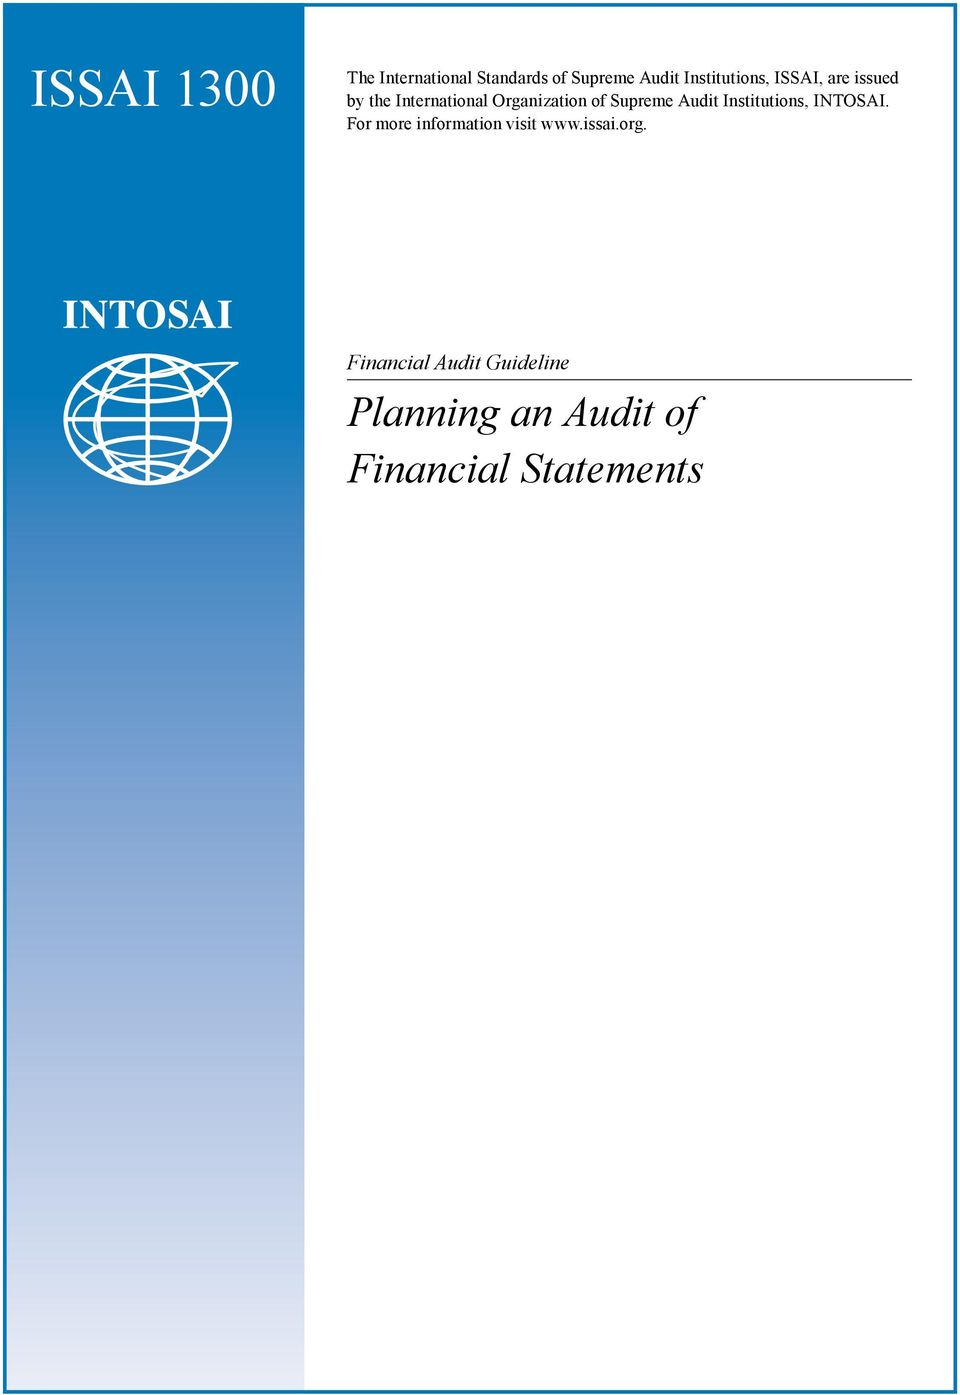 Audit Institutions, INTOSAI. For more information visit www.